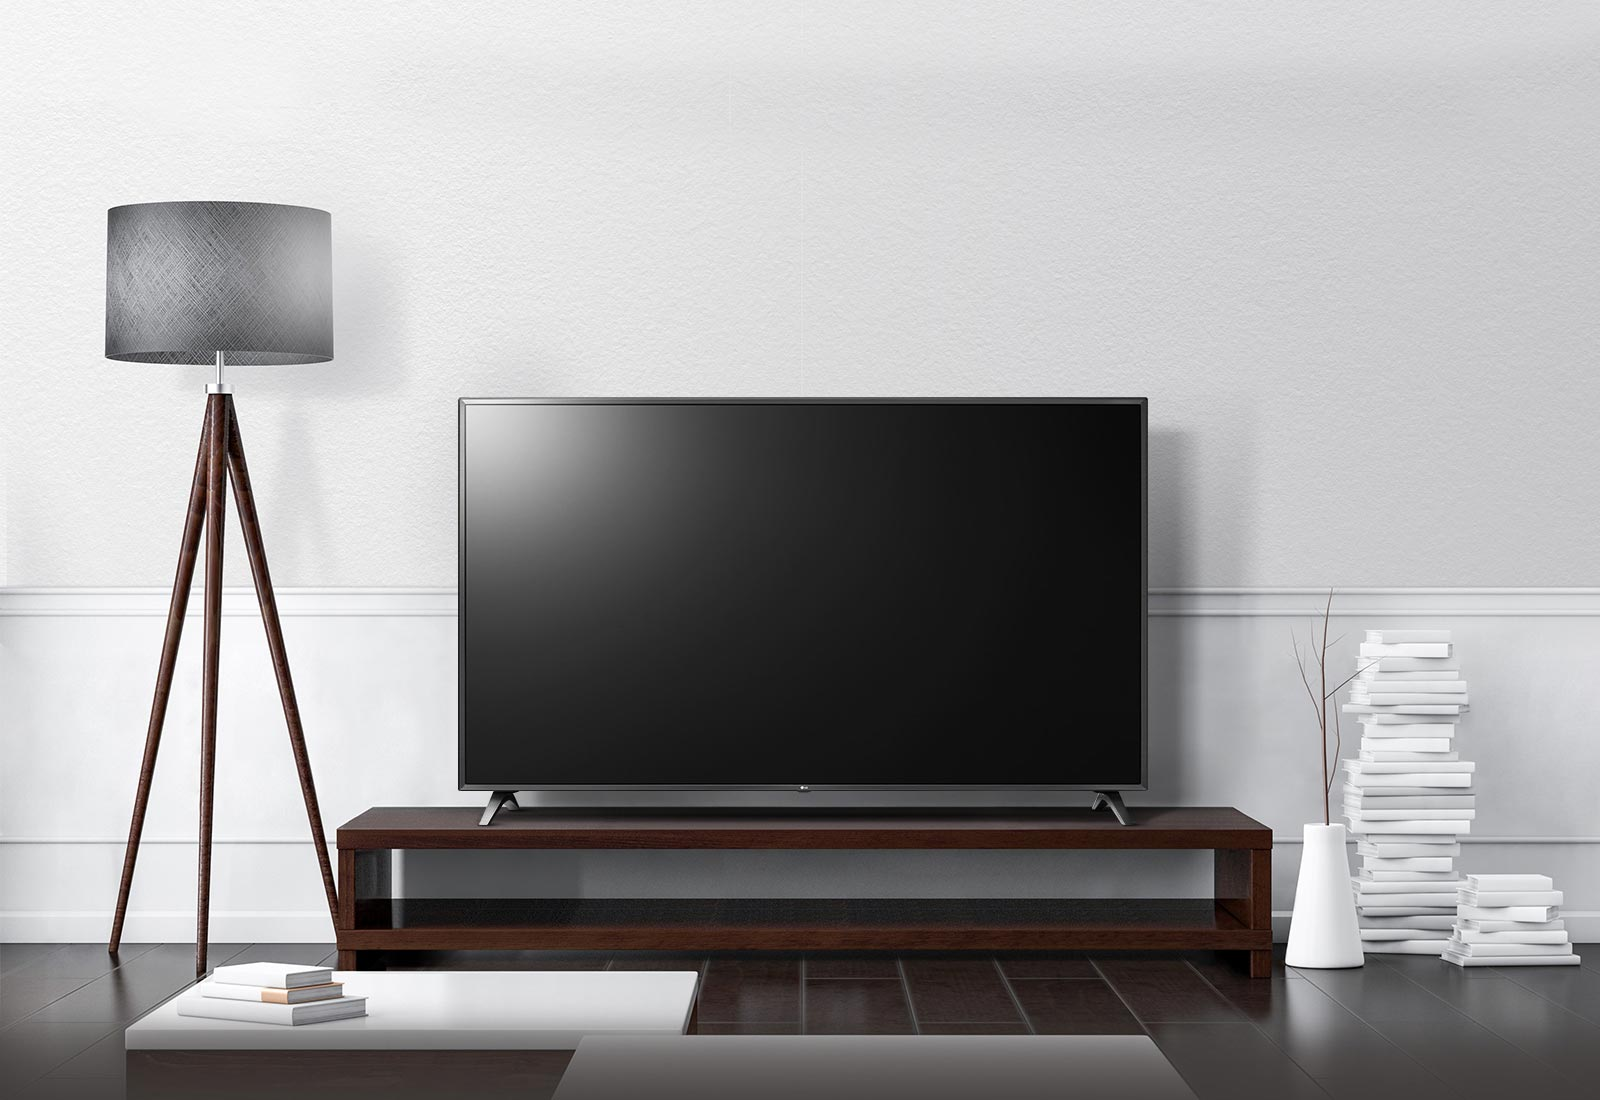 TV-UHD-UM71-08-01-Design-Desktop.jpg